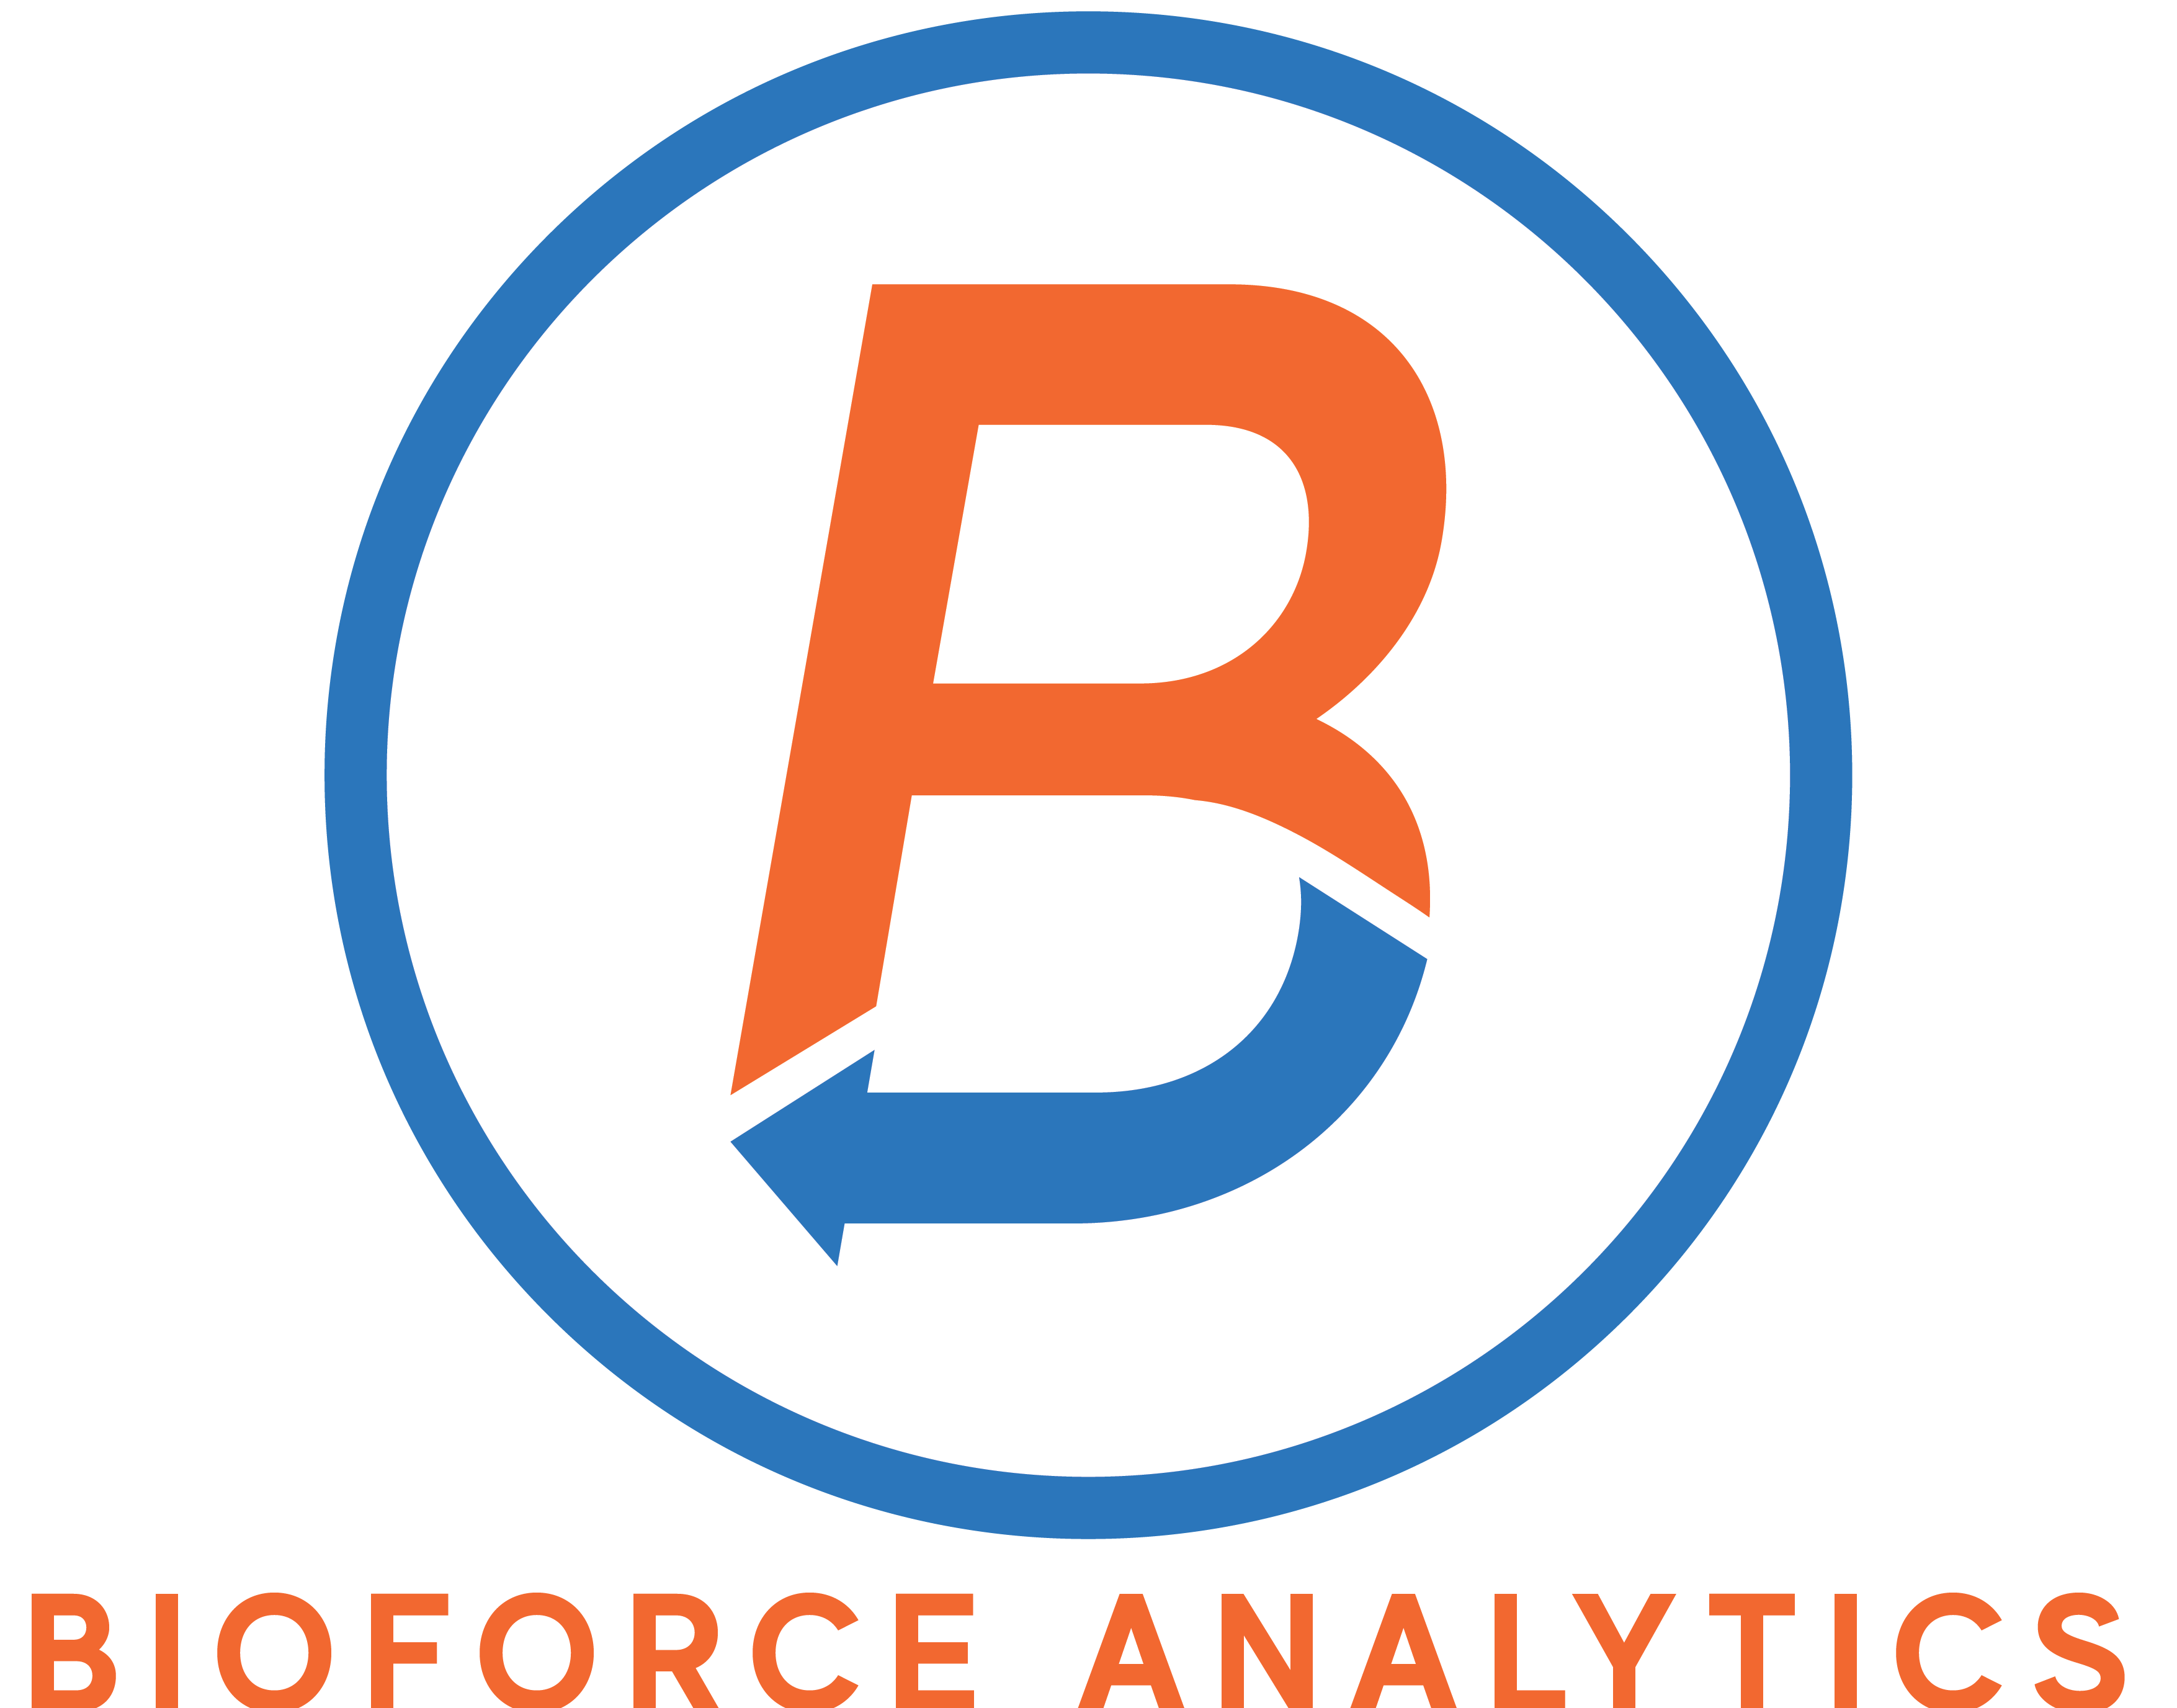 The Past, Present, and Future of BioForce Analytics, LLC: A Company Incubated by nth Solutions, LLC